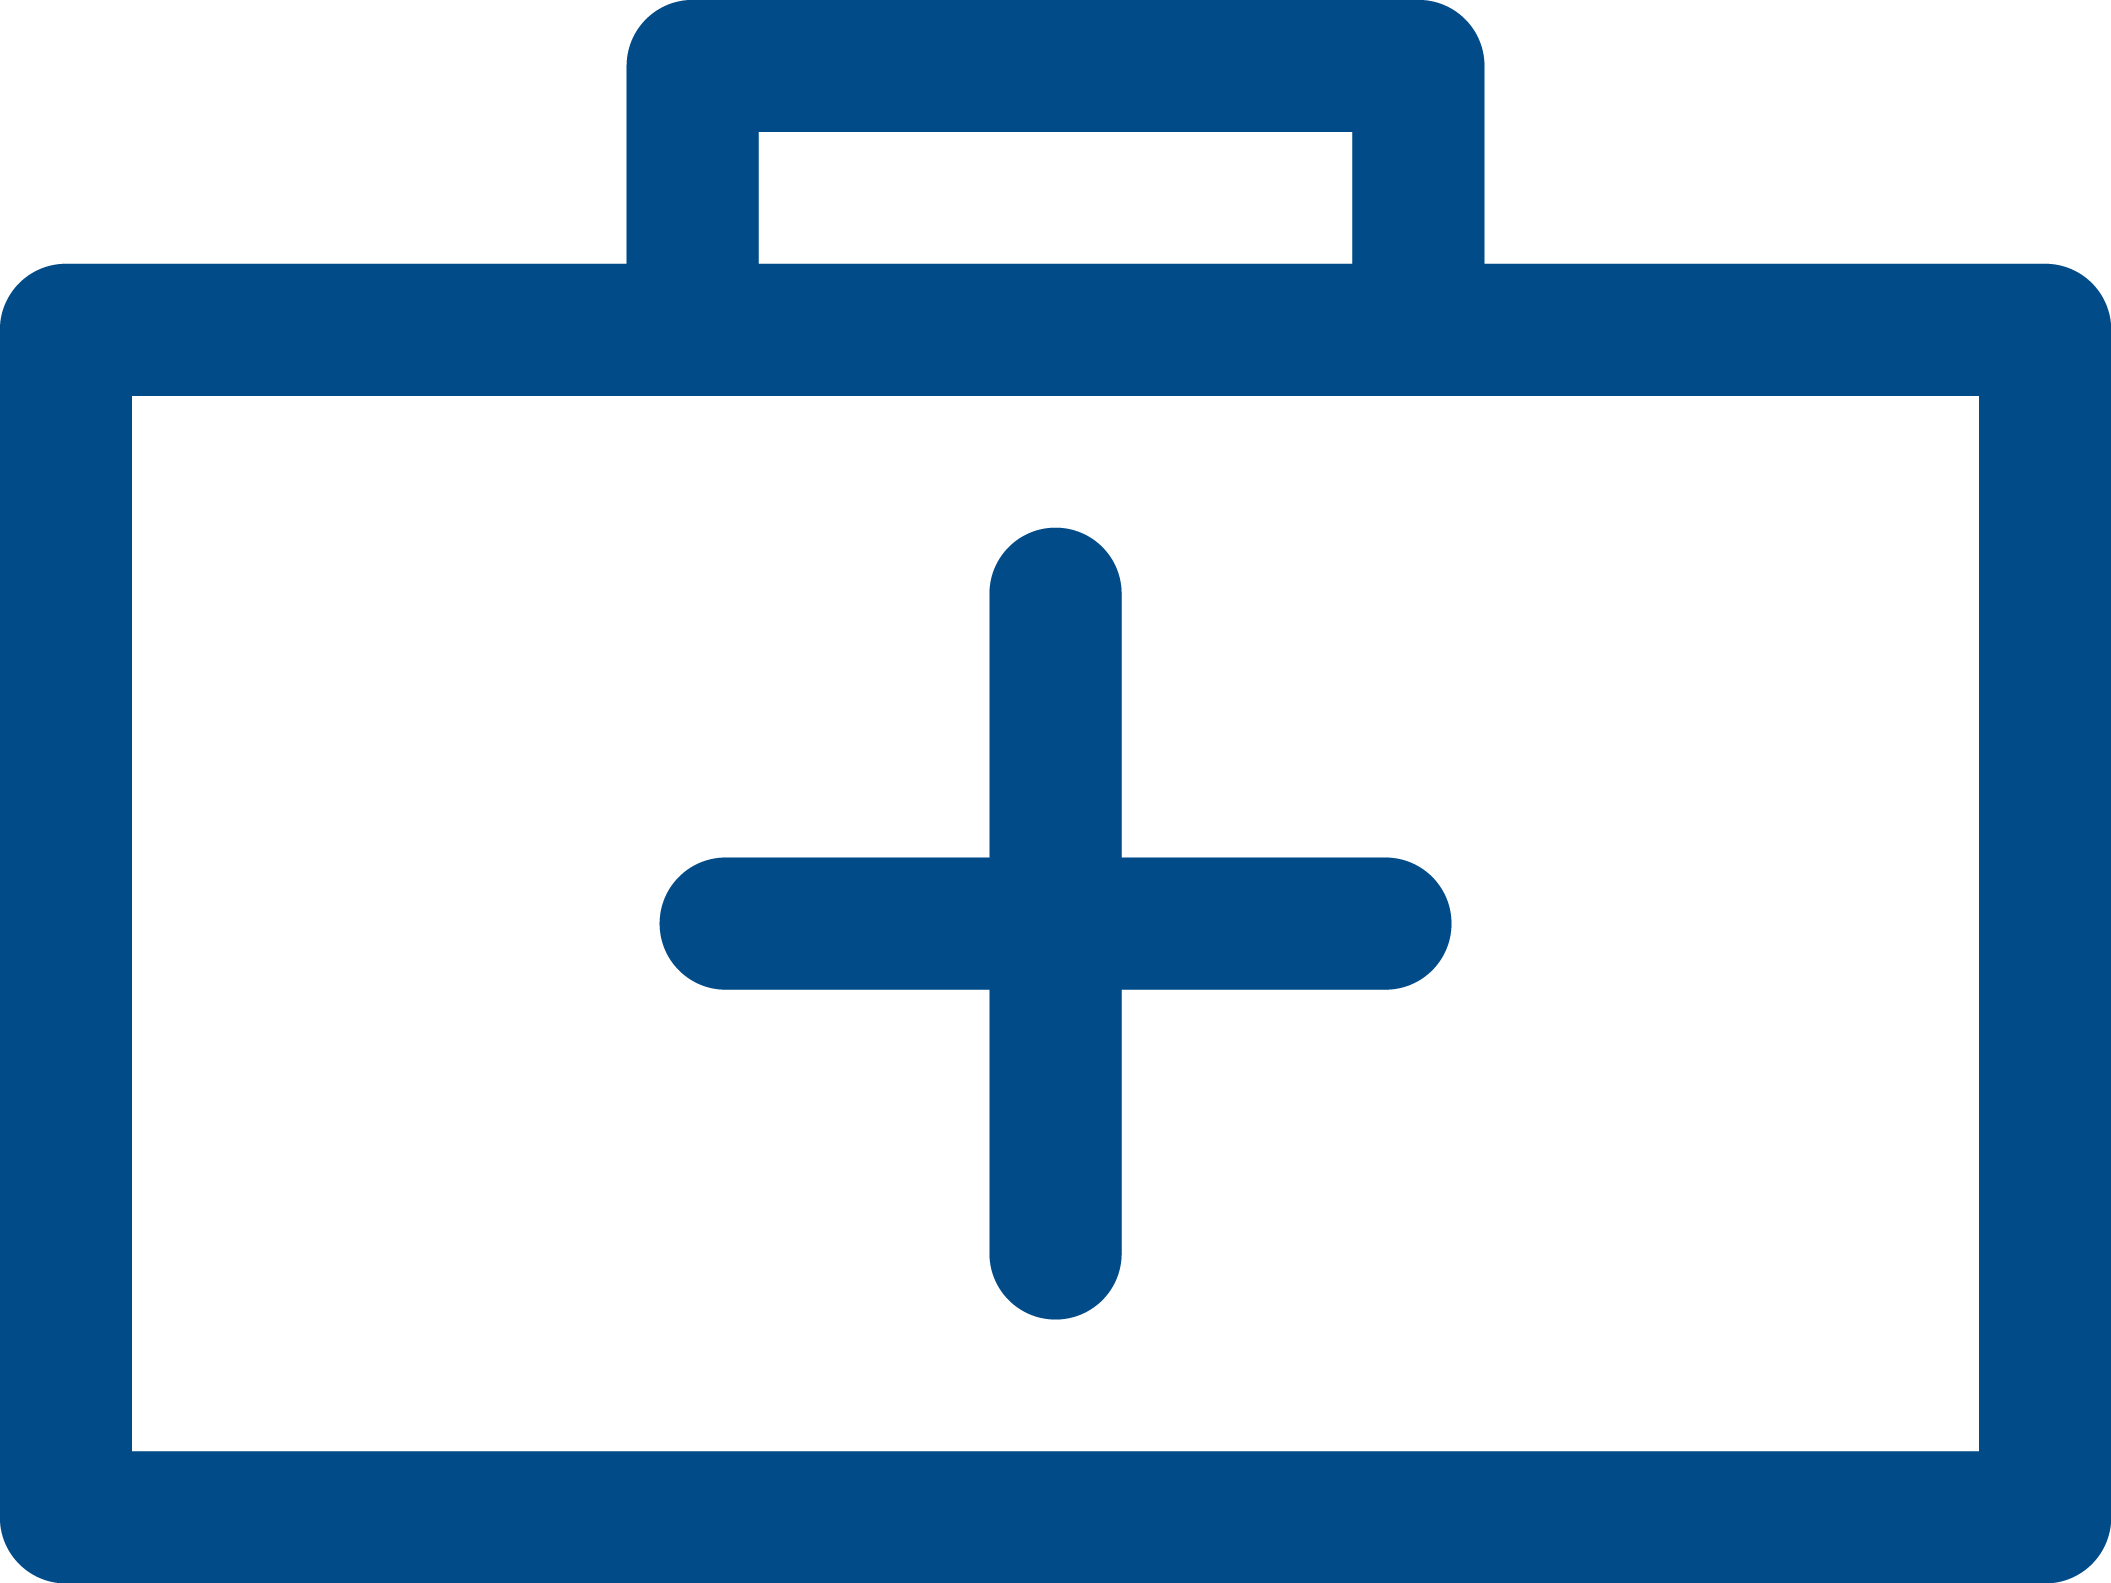 image icon of GP's briefcase